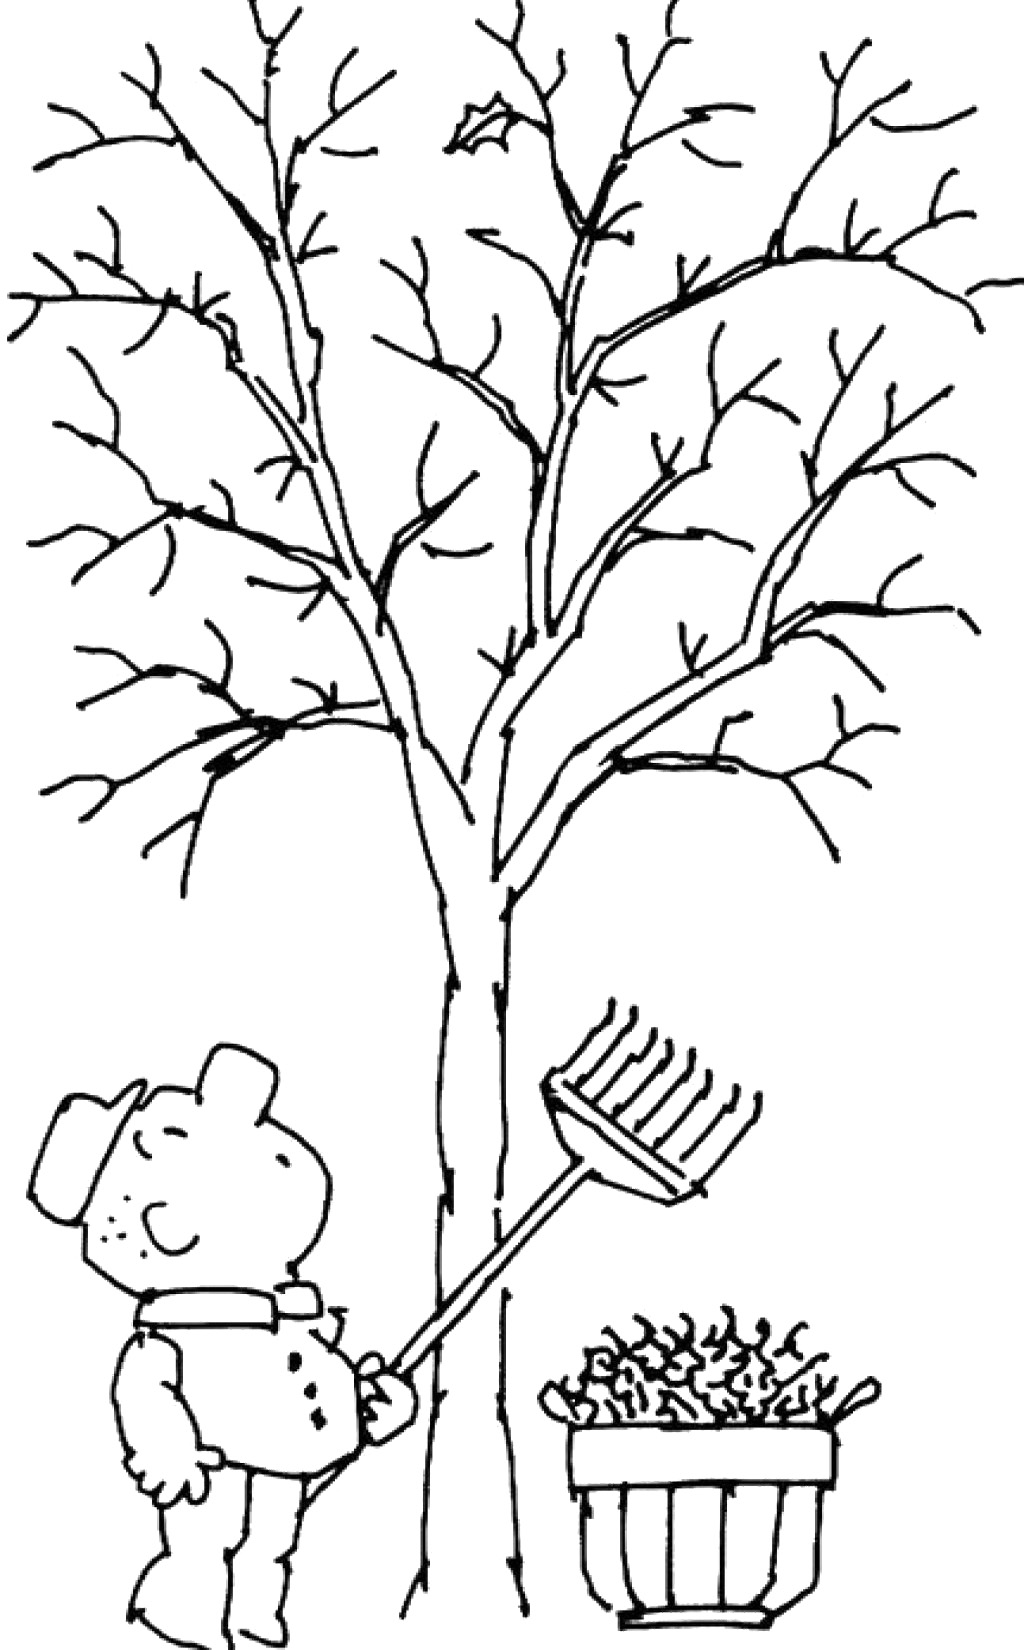 Tree without leaves coloring page to print and download ...